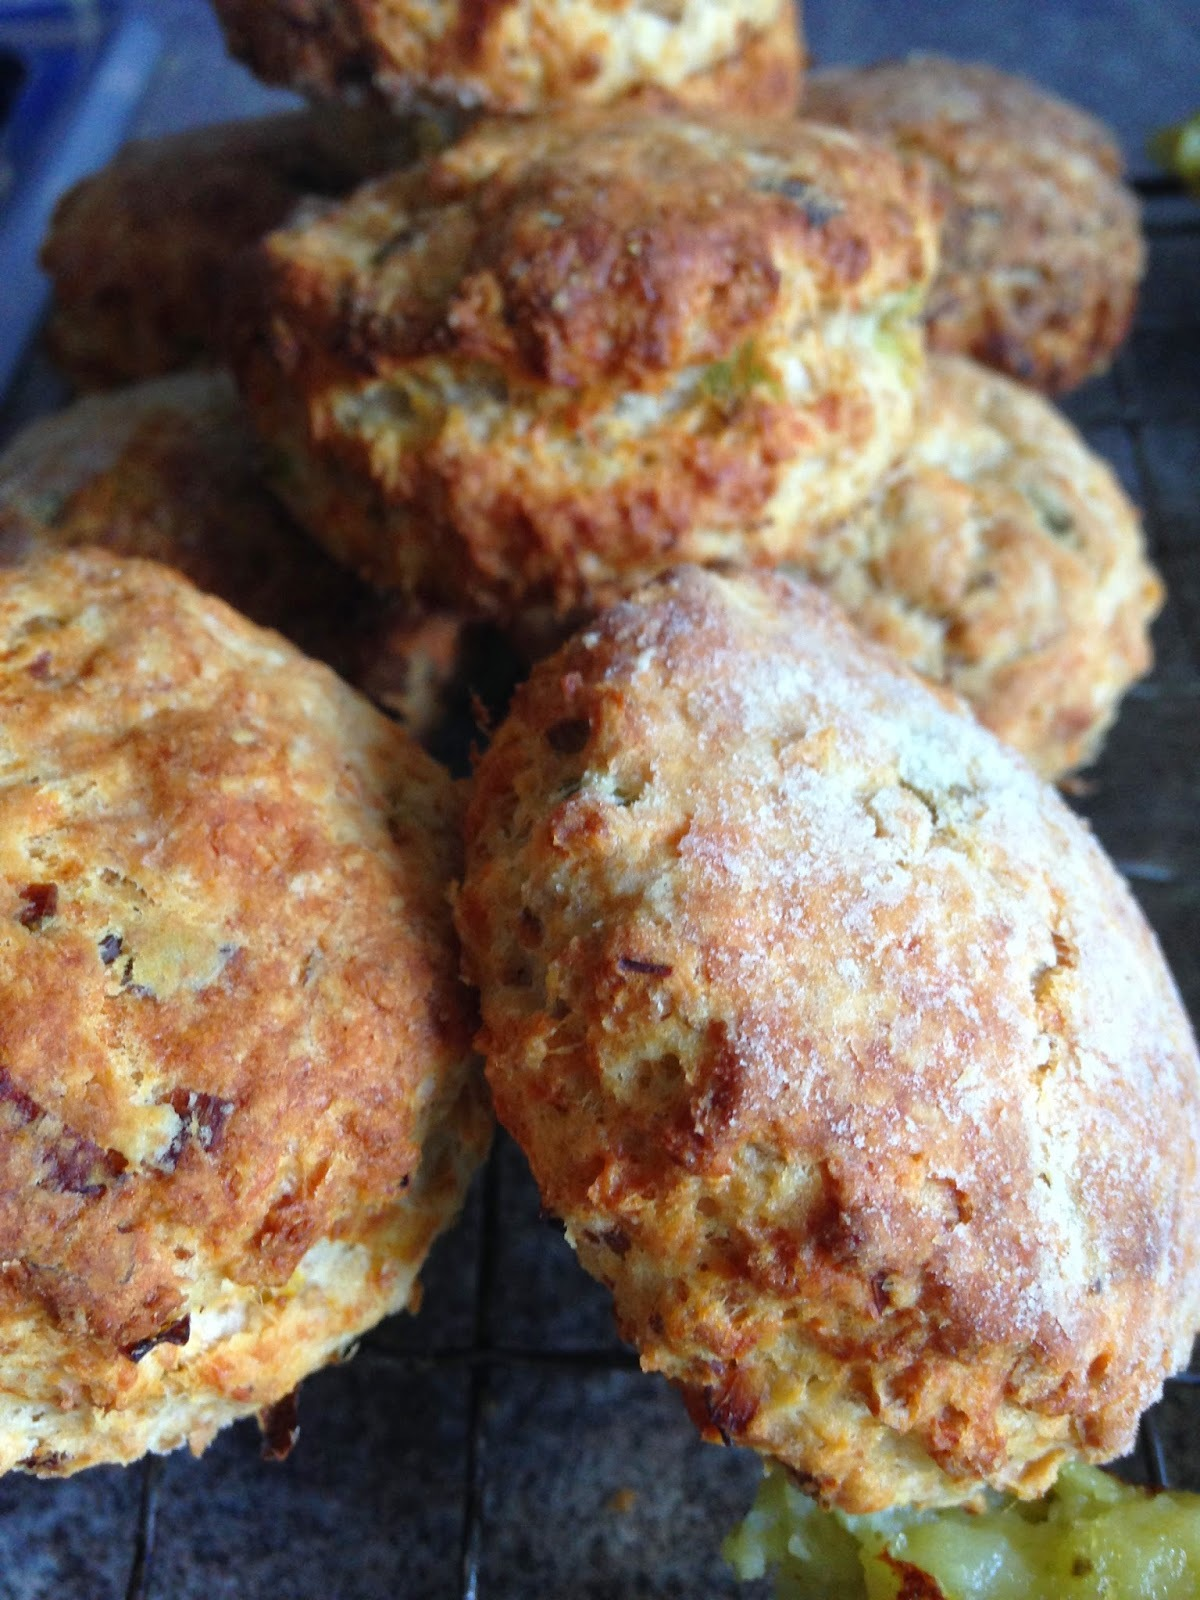 Savoury Scones for the Six Nations